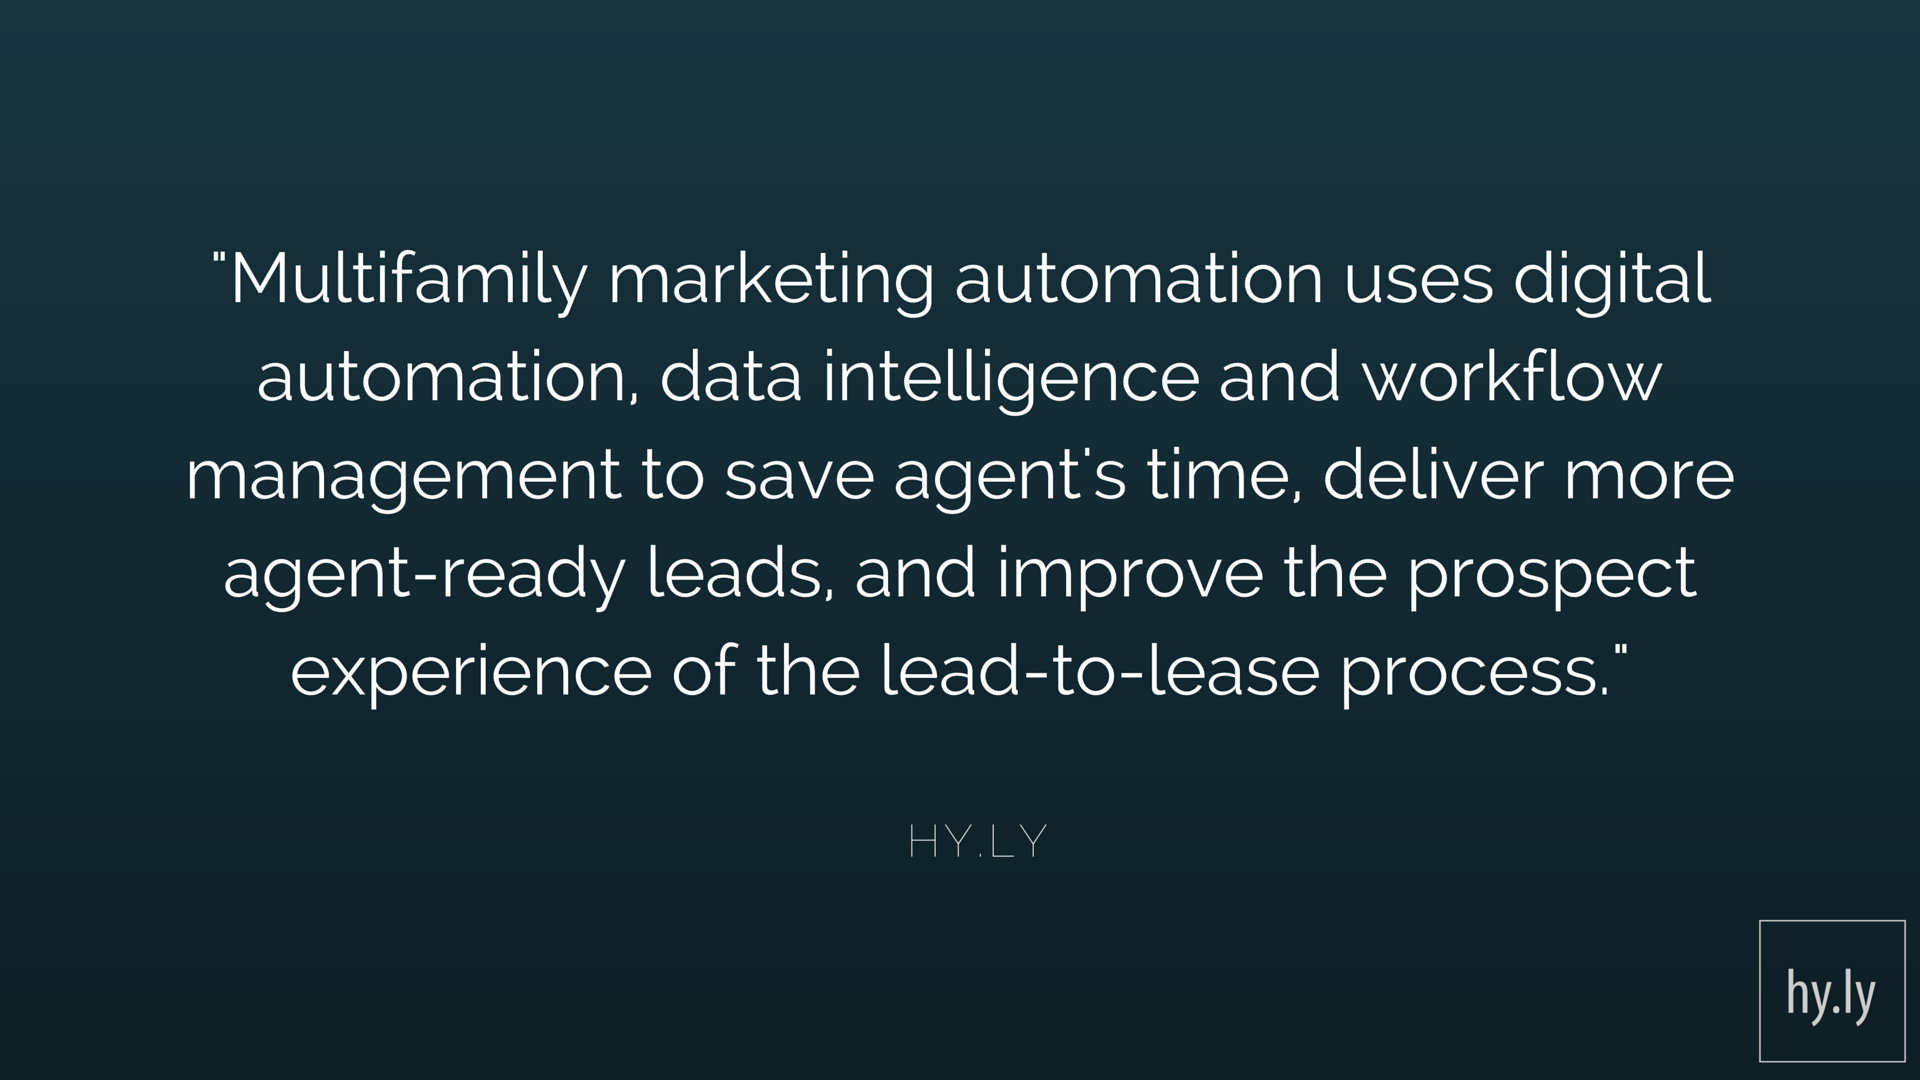 Marketing Automation - An Introduction For Multifamily